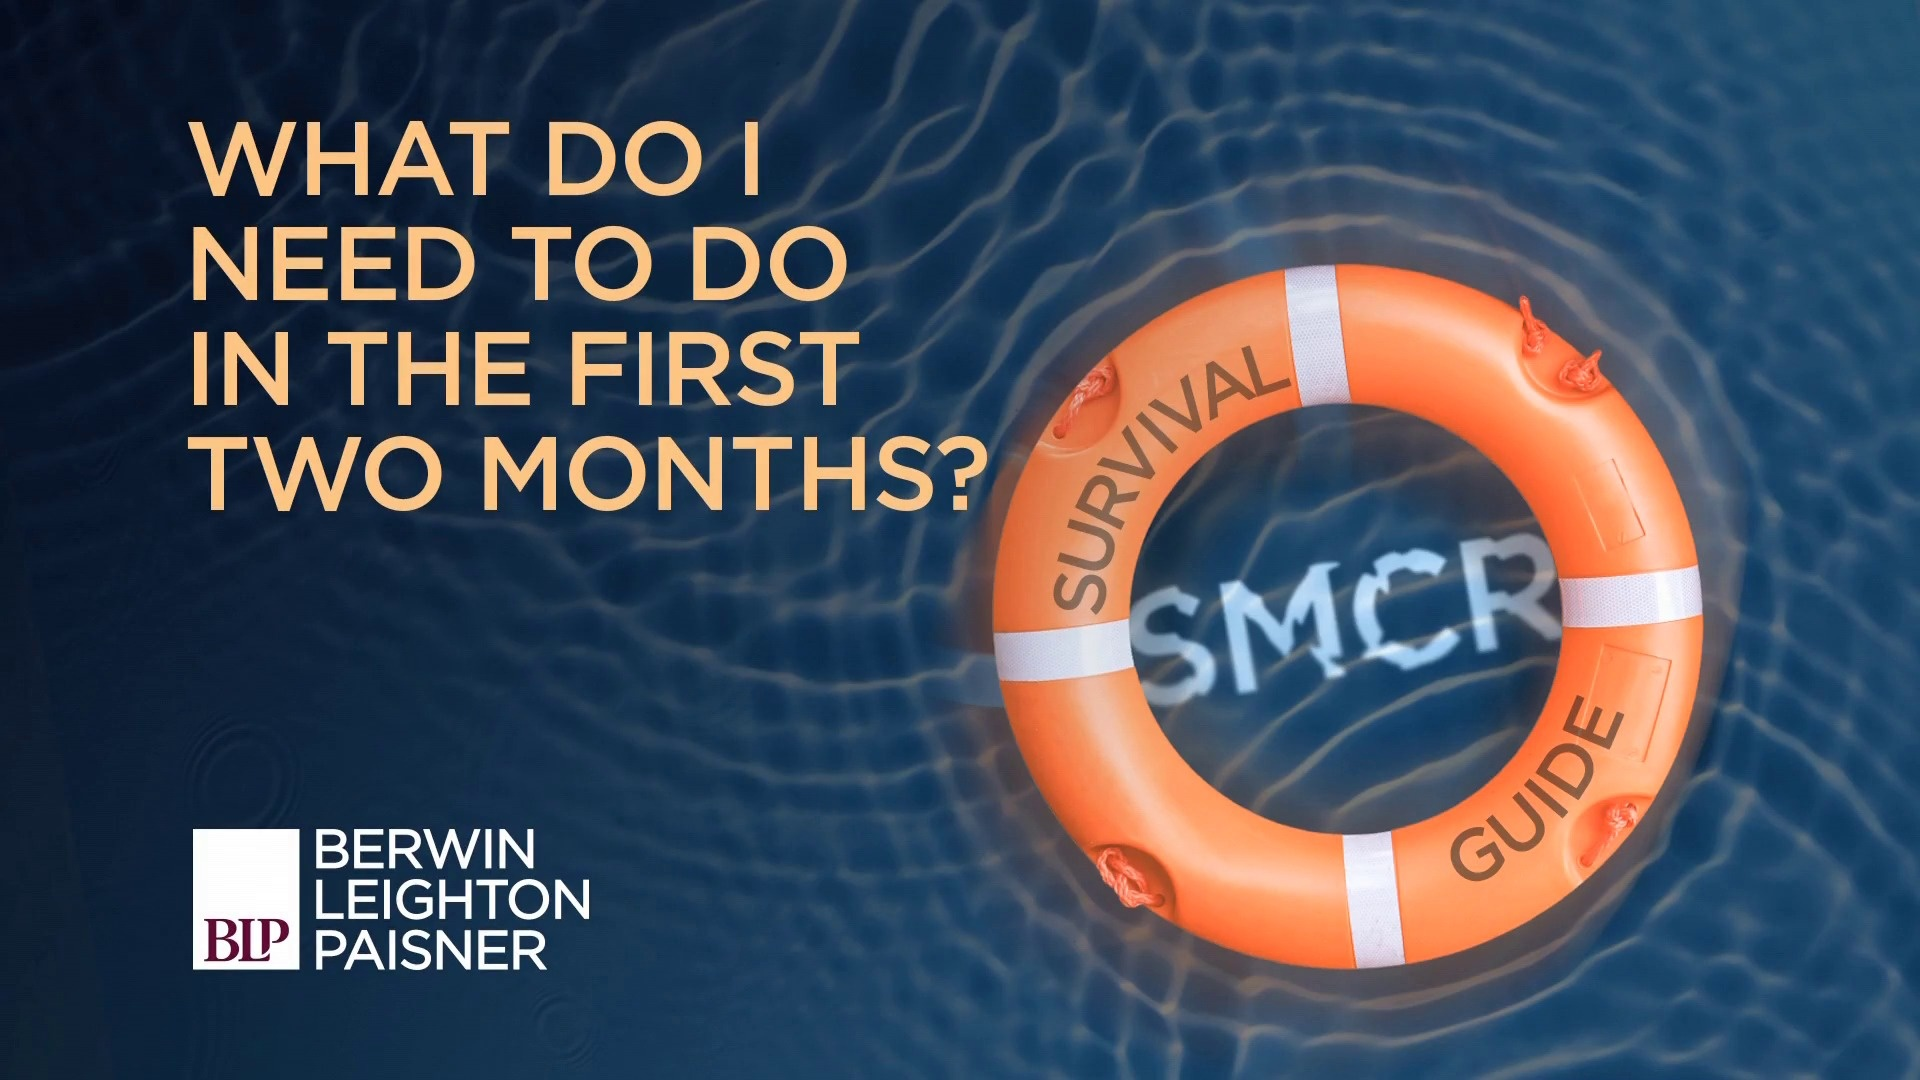 Still image from 'SMCR: What do I need to do in the first 2 months?' video